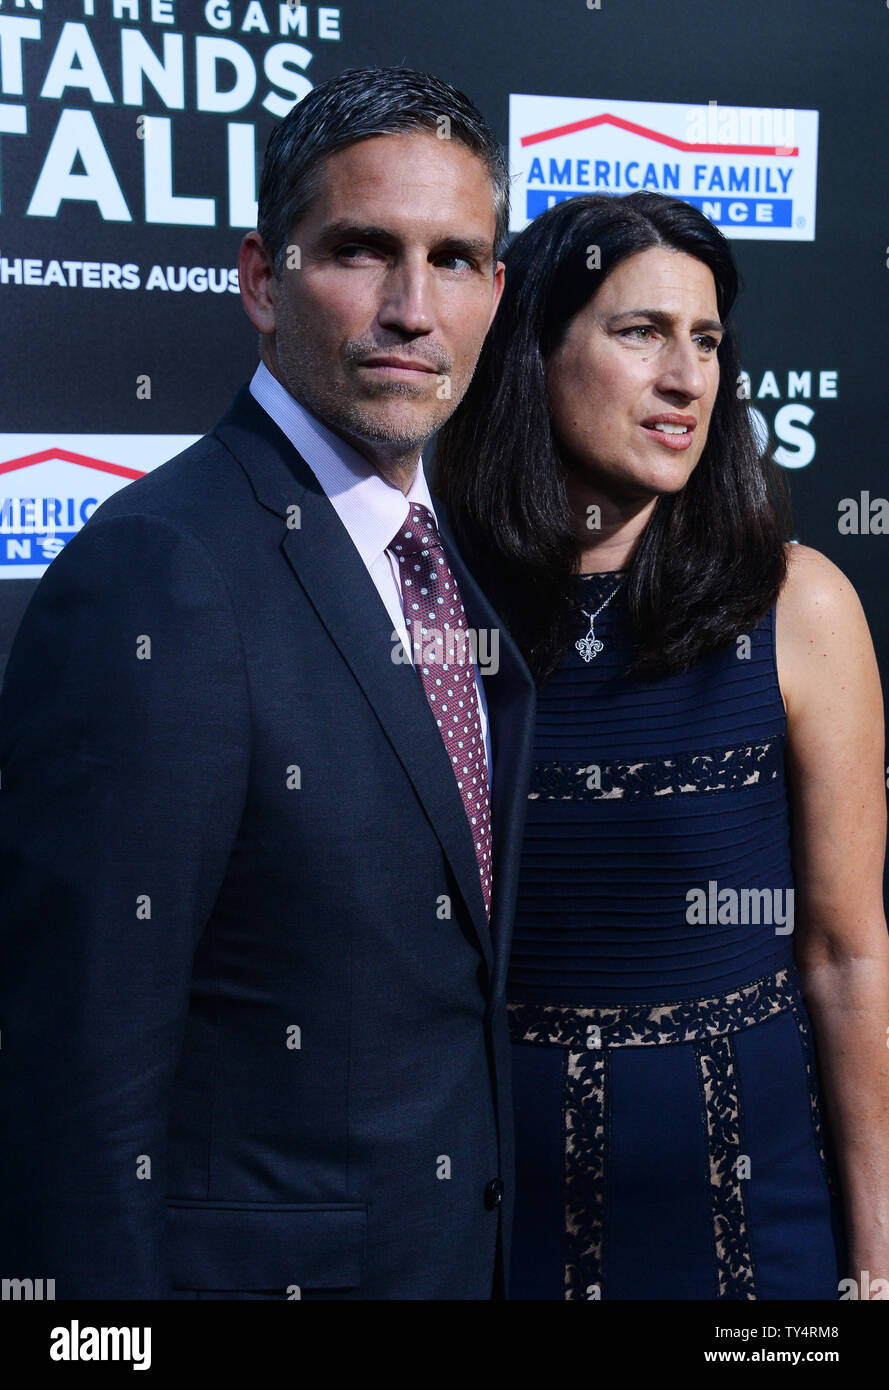 Cast Member Jim Caviezel And His Wife Kerri Browitt Caviezel Attend The Premiere Of The Motion Picture Sports Drama When The Game Stands Tall At The Arclight Cinerama Dome In The Hollywood For additional details on her private and. https www alamy com cast member jim caviezel and his wife kerri browitt caviezel attend the premiere of the motion picture sports drama when the game stands tall at the arclight cinerama dome in the hollywood section of los angeles on august 4 2014 inspired by a true story the film tells the remarkable journey of legendary football coach bob ladouceur jim caviezel who took the de la salle high school spartans from obscurity to a 151 game winning streak that shattered all records for any american sport upijim ruymen image257647272 html